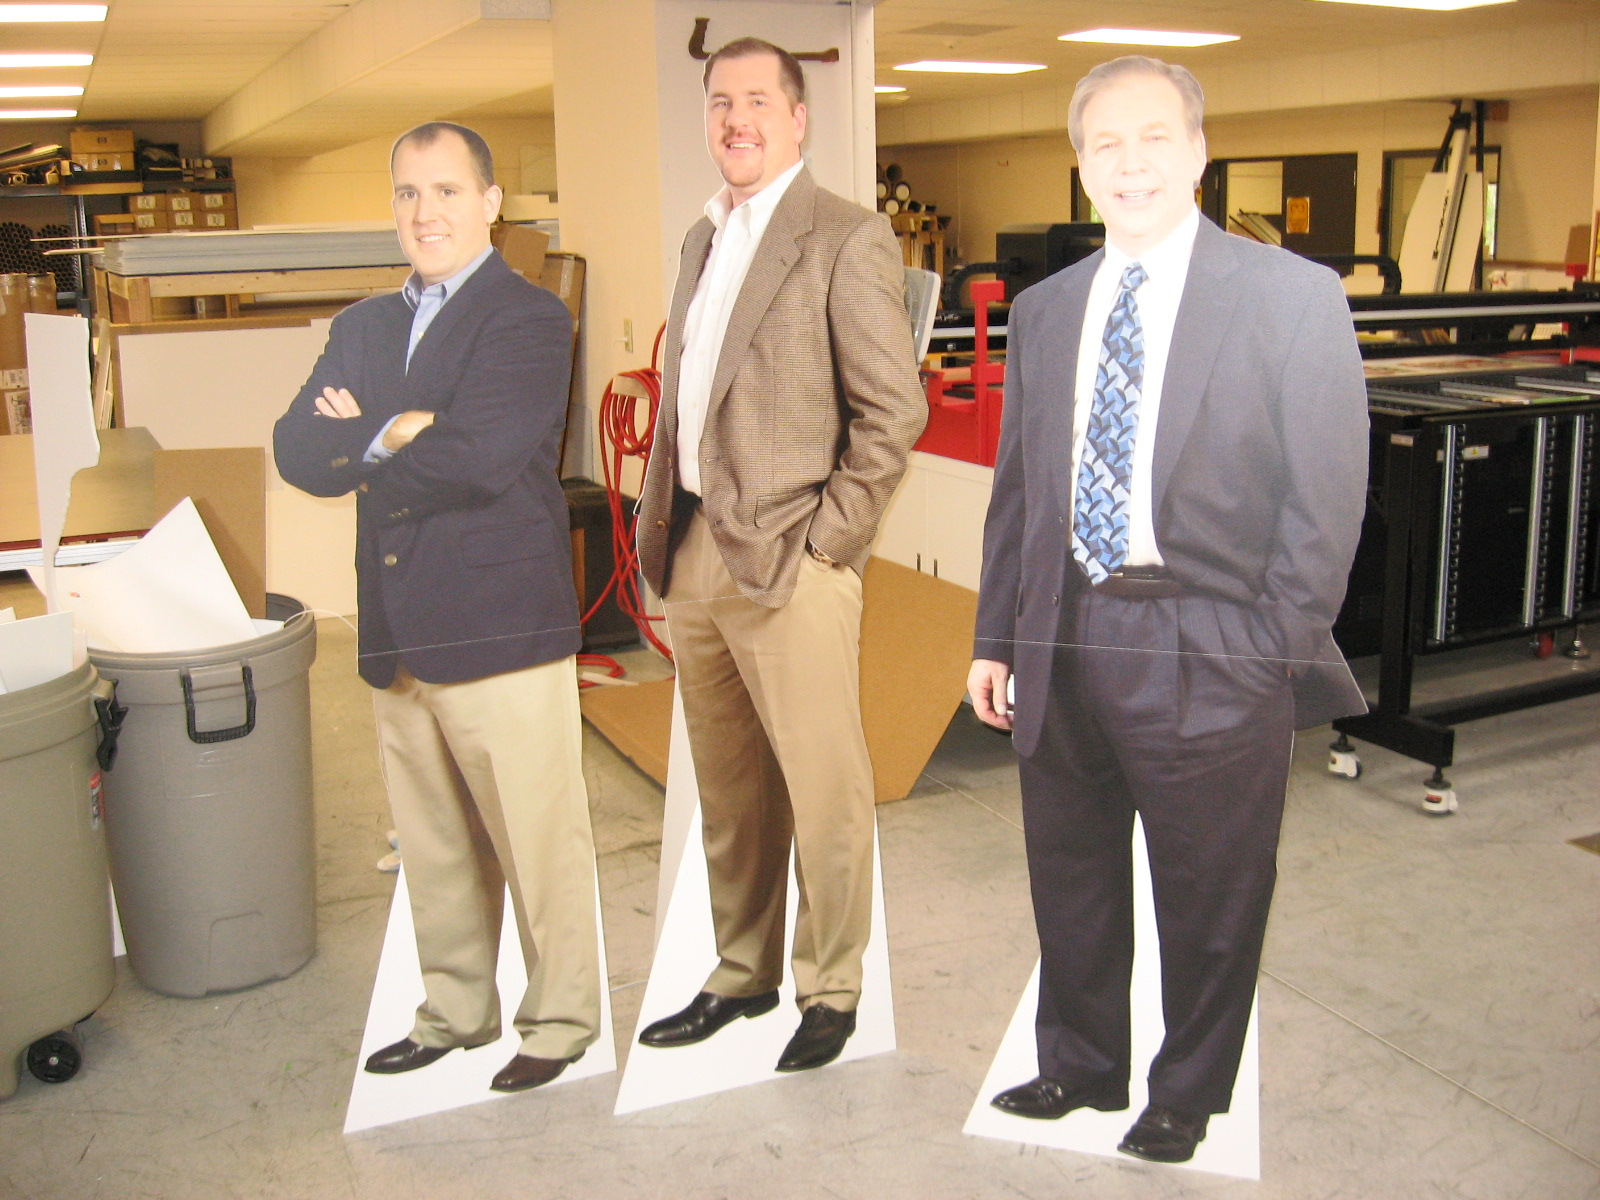 Life Size Cutouts of People | megaprintinc